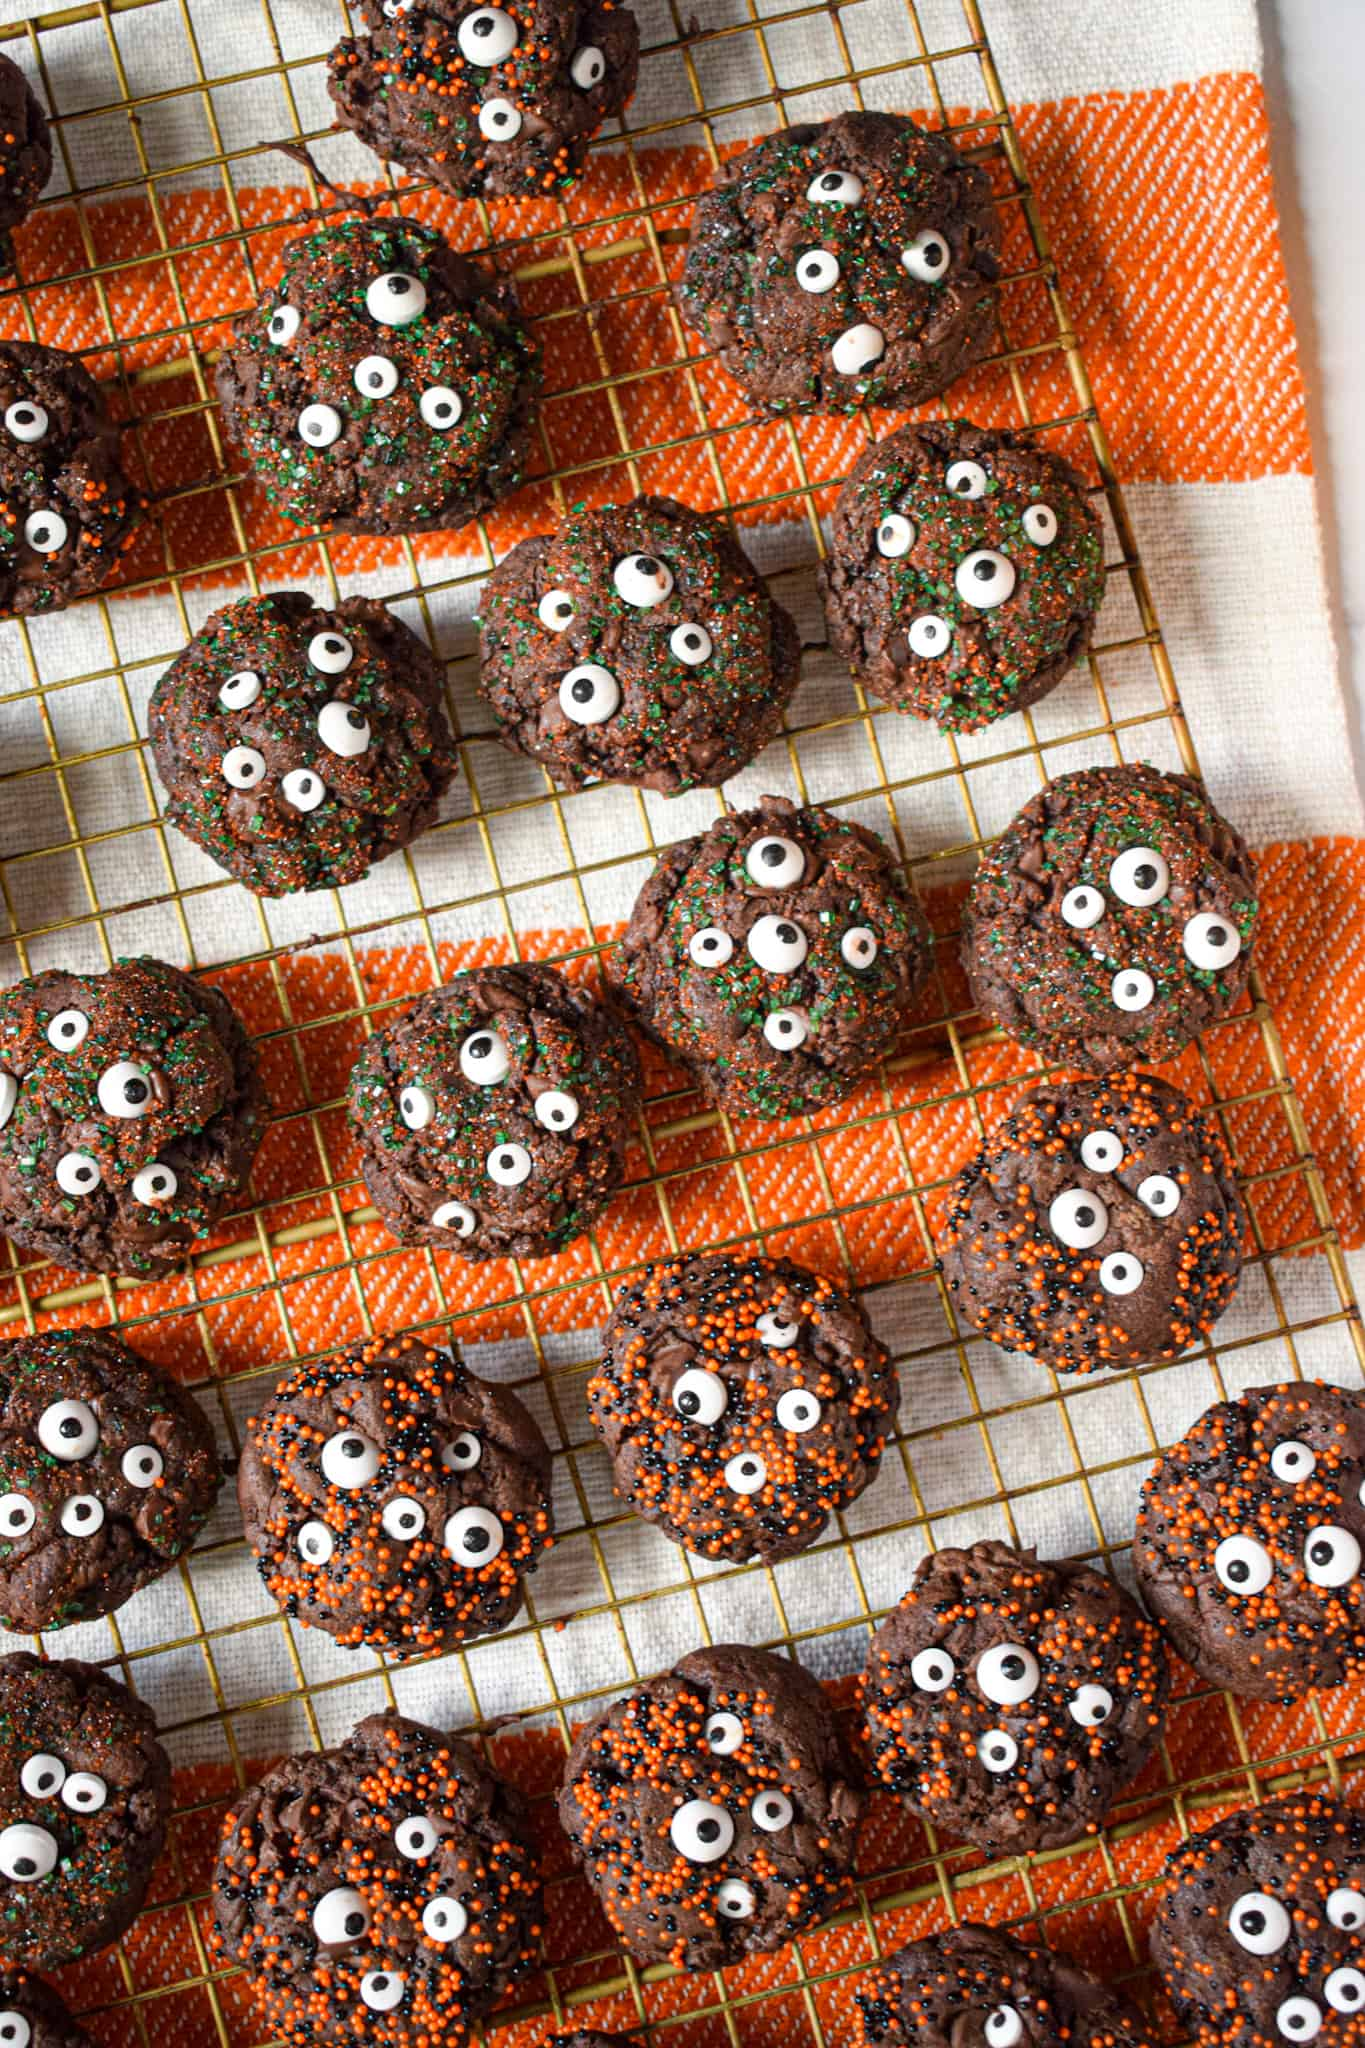 spooky chocolate cookies for halloween with candy eyeballs and sprinkles